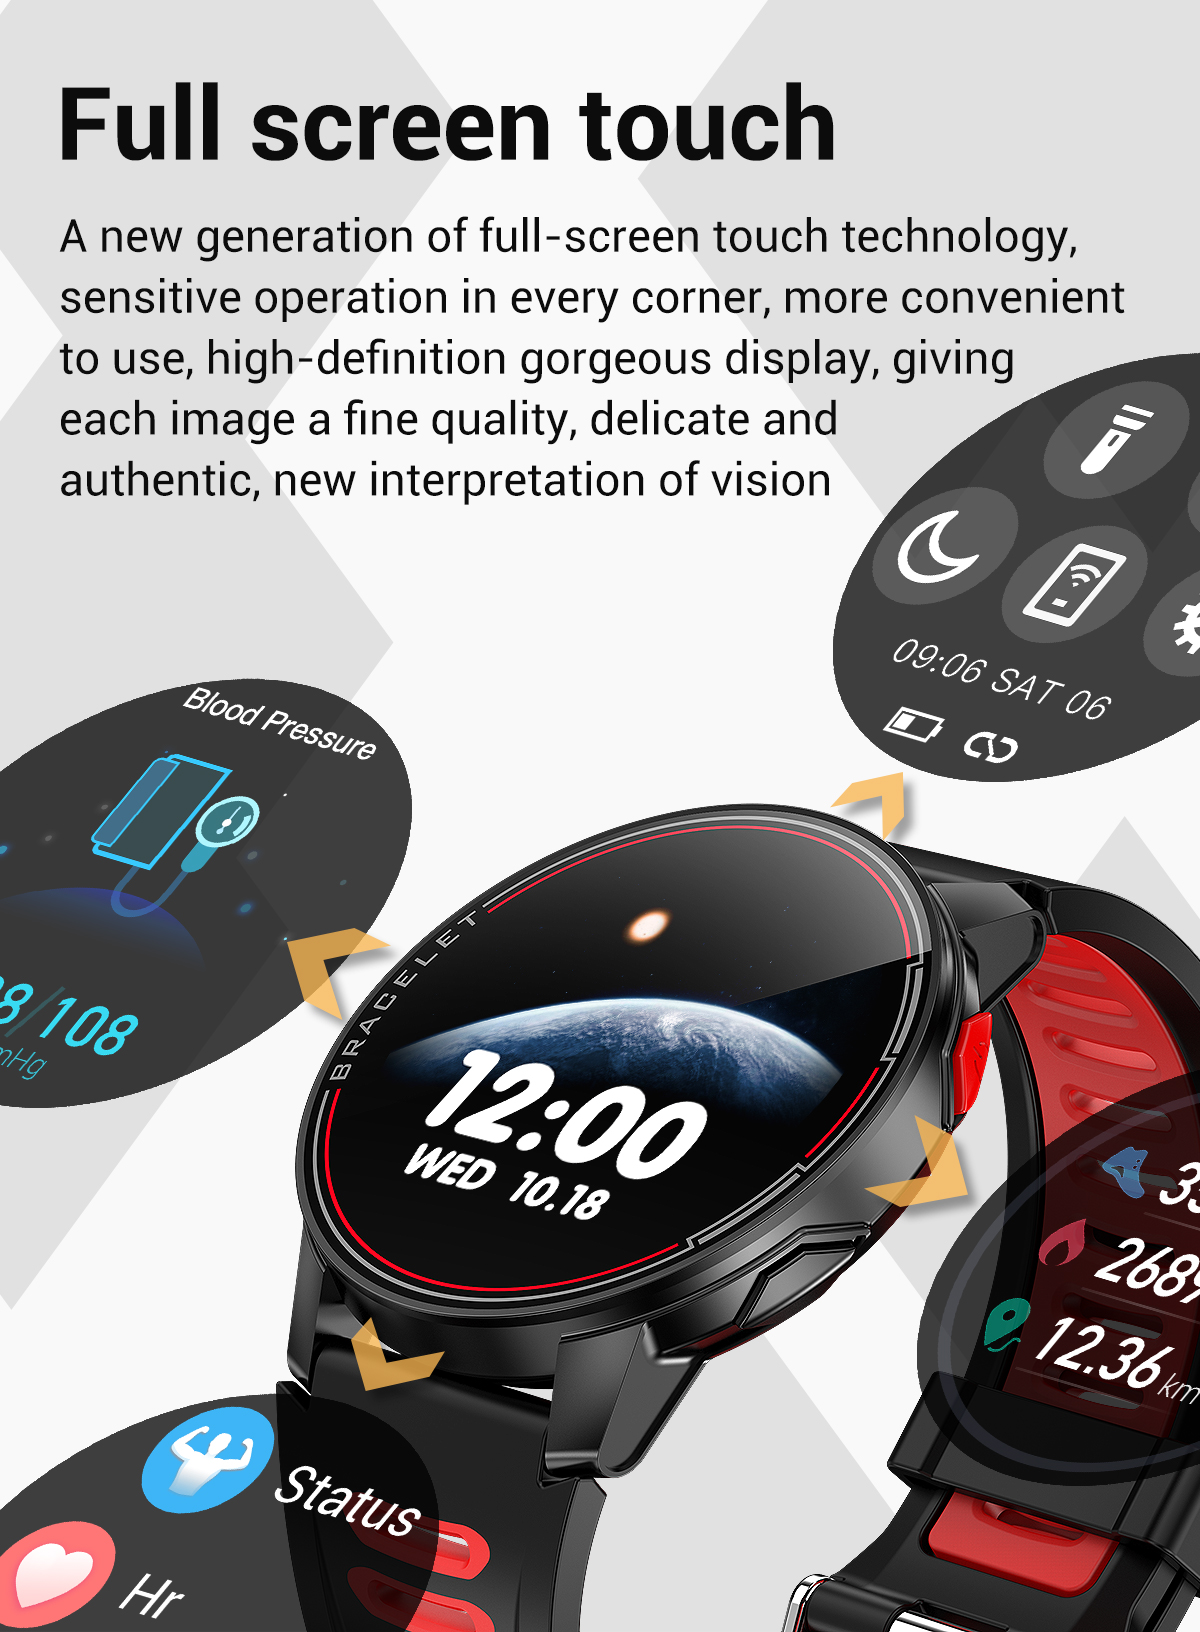 Hd99fe672fc0f48c3bc987ad9832170c4m 2020 New L6 Smart Watch IP68 Waterproof Sport Men Women Bluetooth Smartwatch Fitness Tracker Heart Rate Monitor For Android IOS